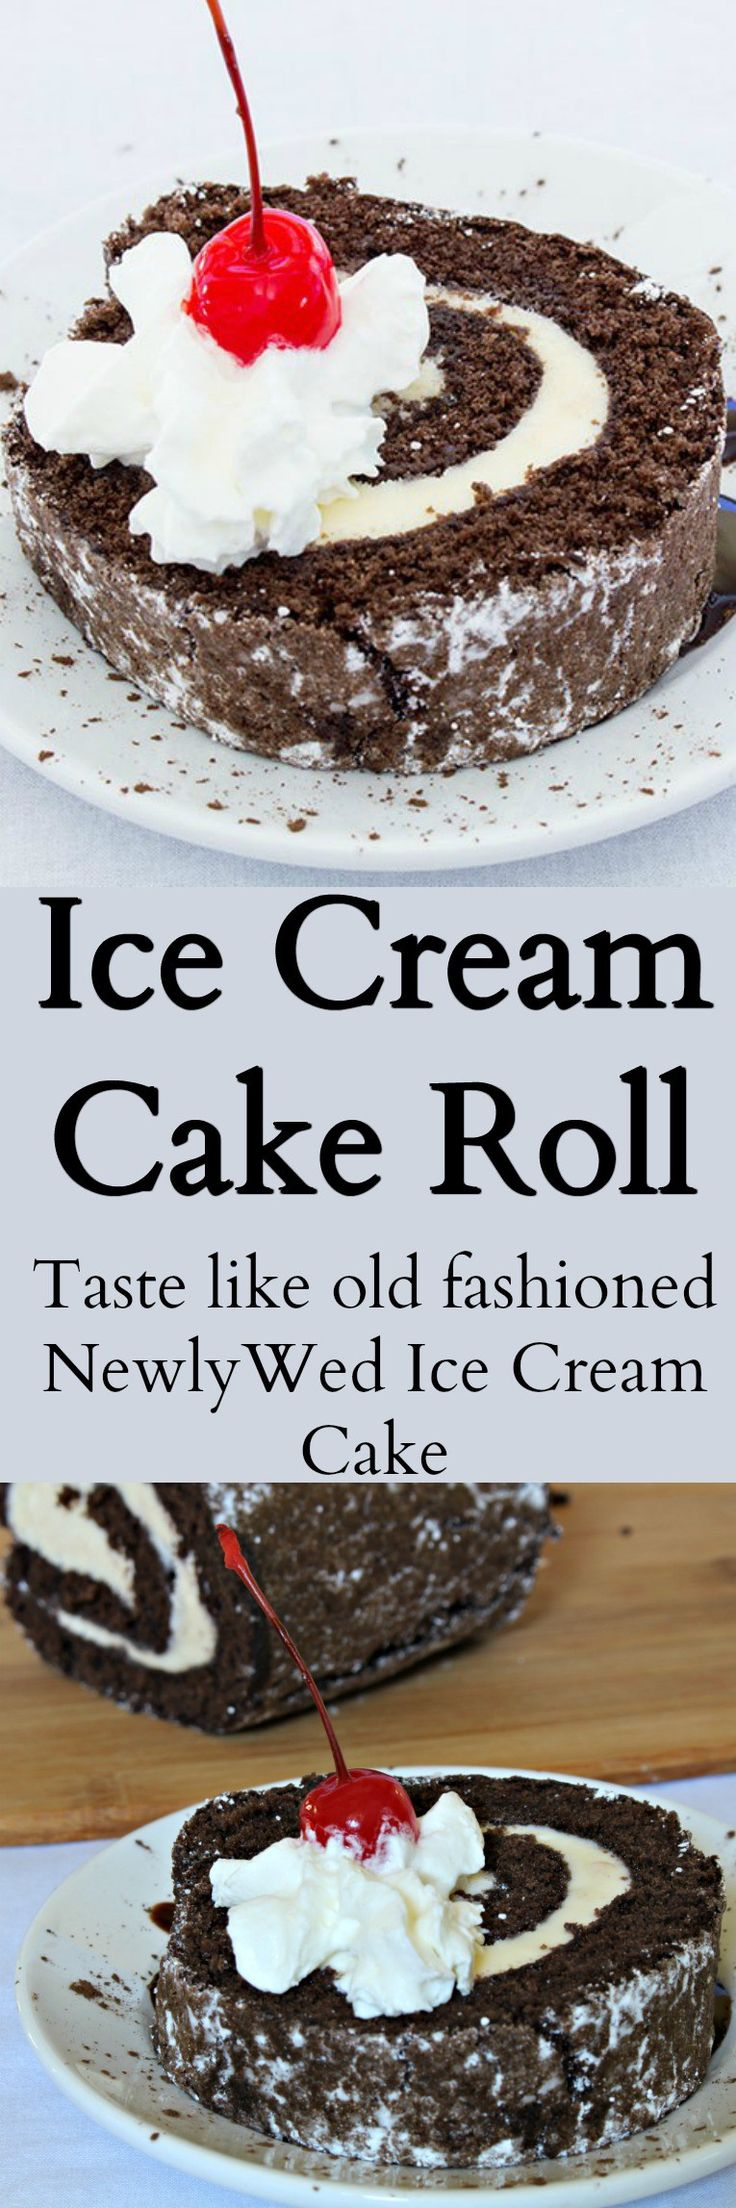 Newlywed Ice Cream Cake Roll Recipe